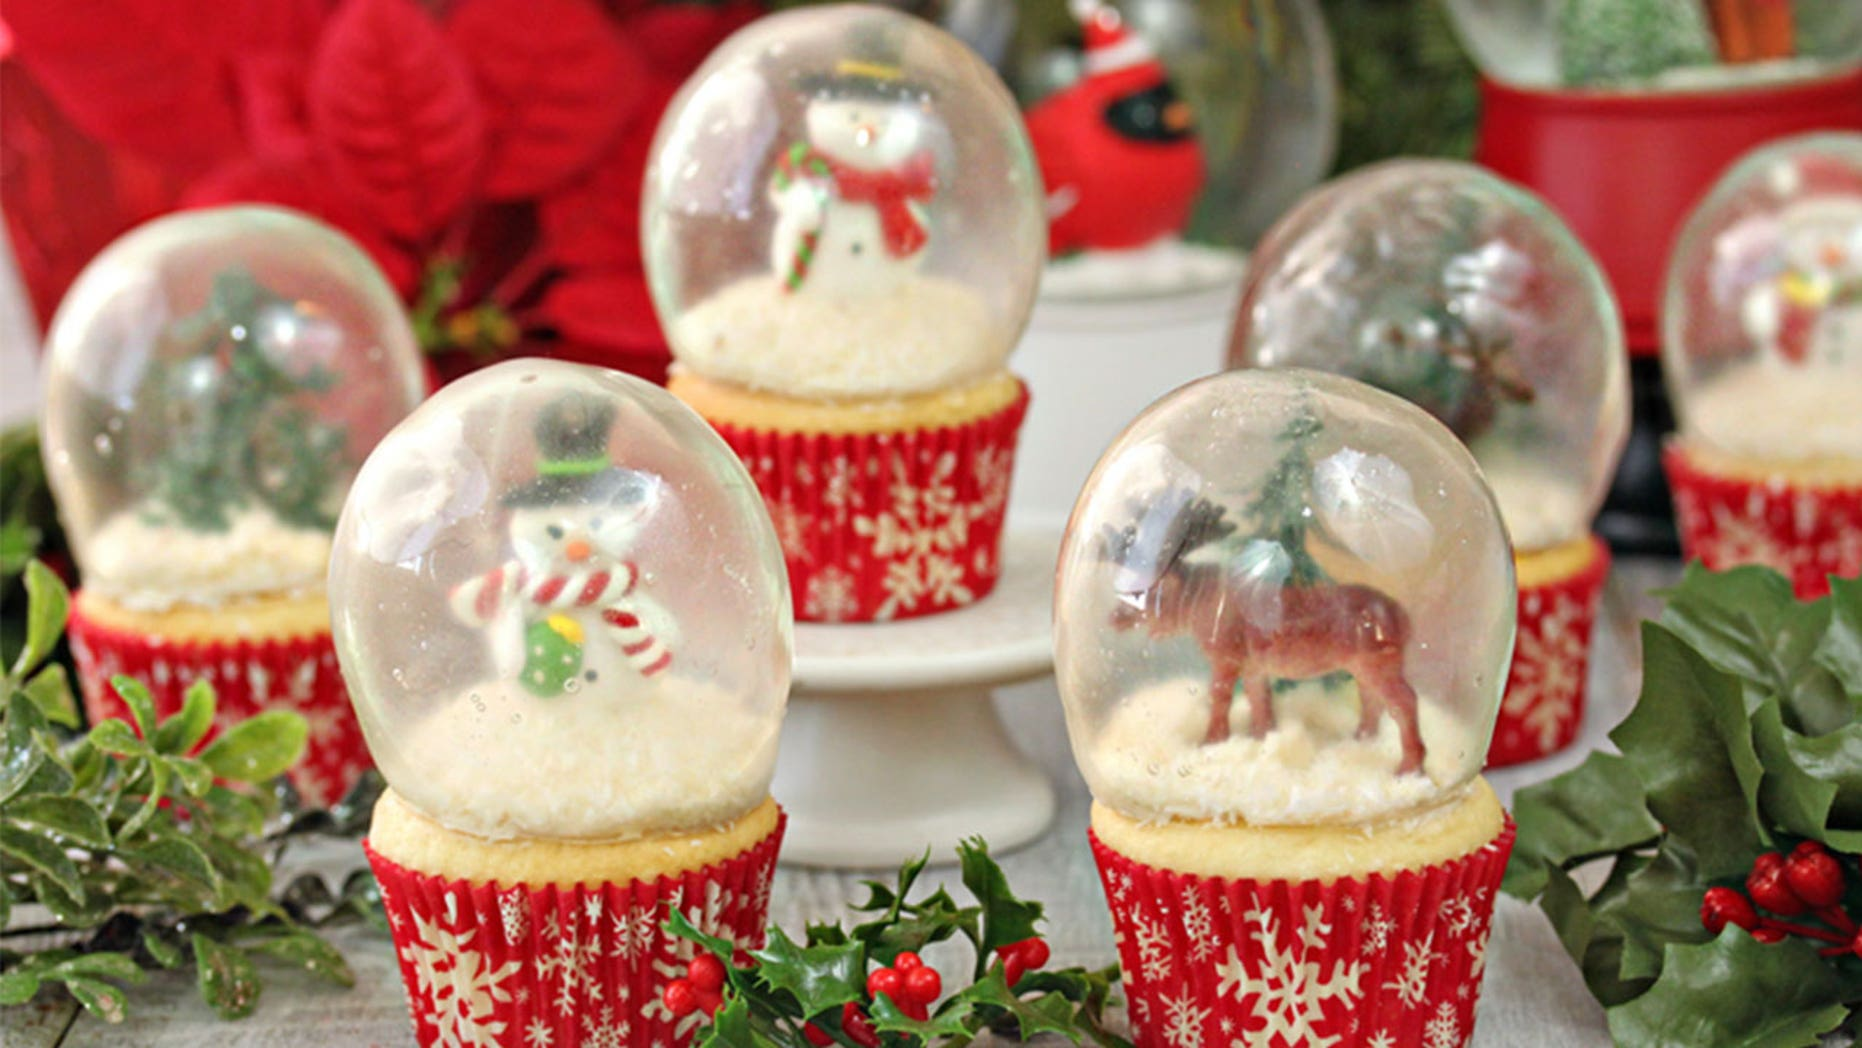 Food blogger Elizabeth LaBau is suing Food Network over her snow globe cupcakes how-to video